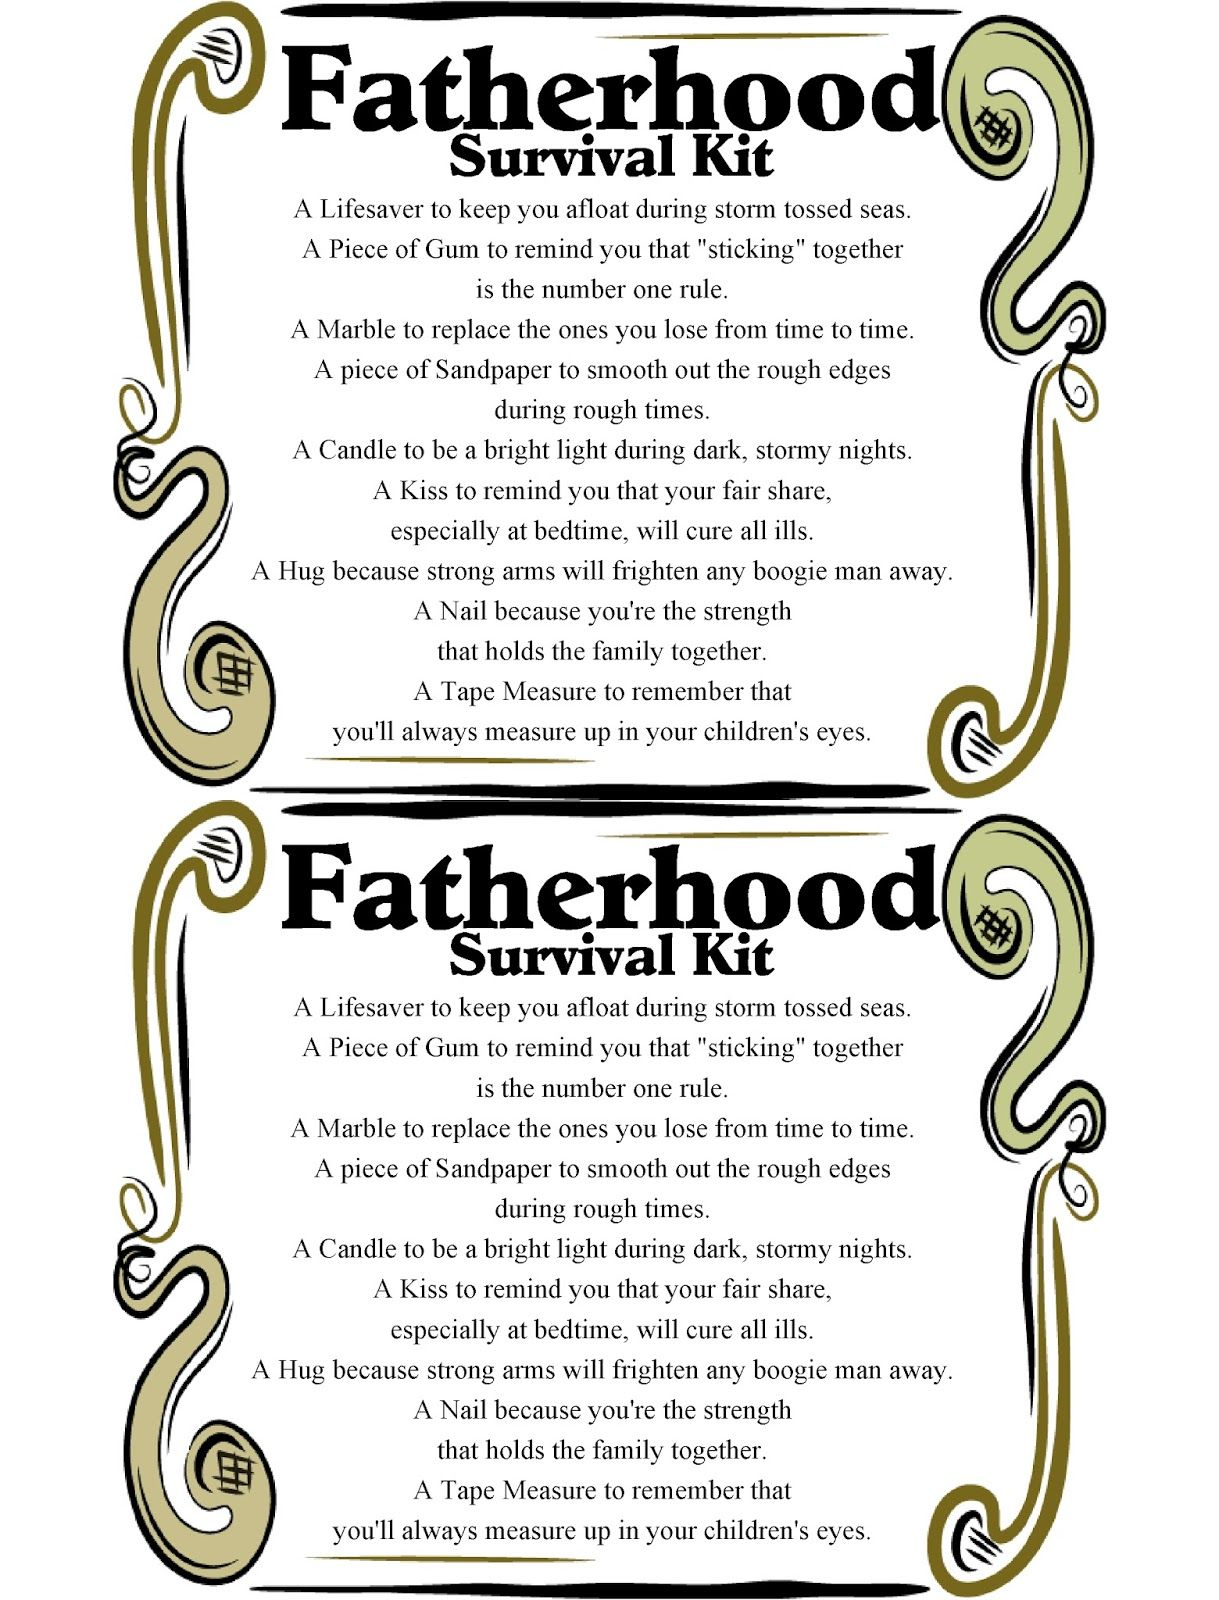 Fatherhood Survival Kit Printable Survival Kit Gifts Dad